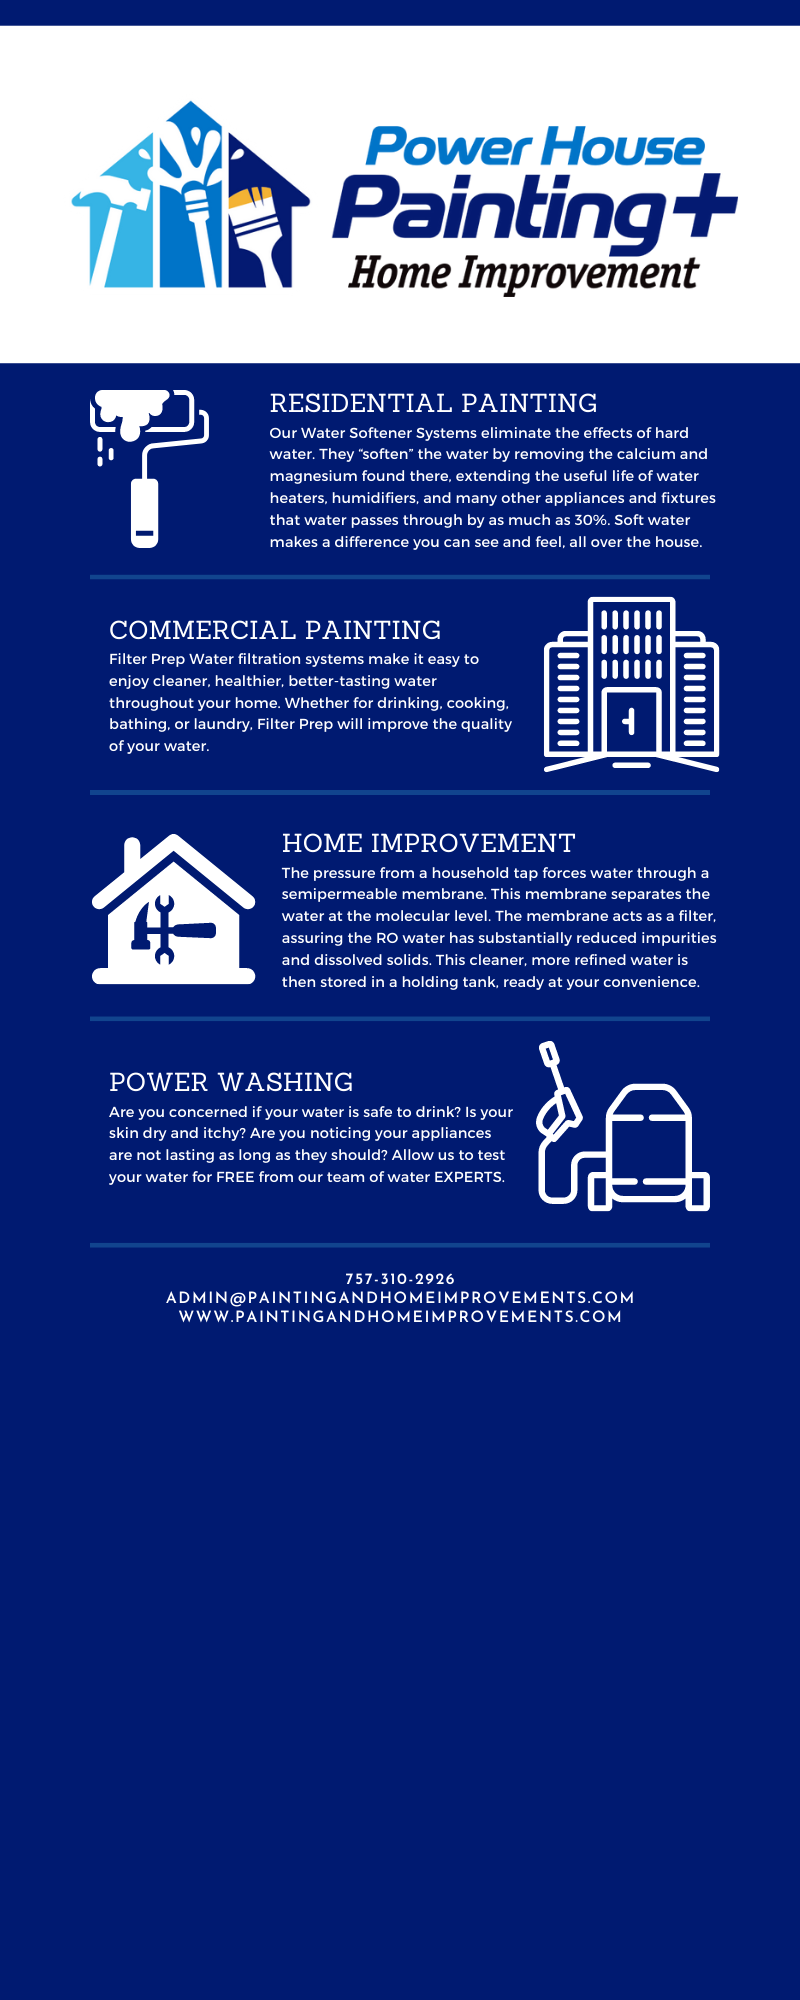 We Are Your Local Painting, Home Improvement, and Pressure Washing Professionals! 3